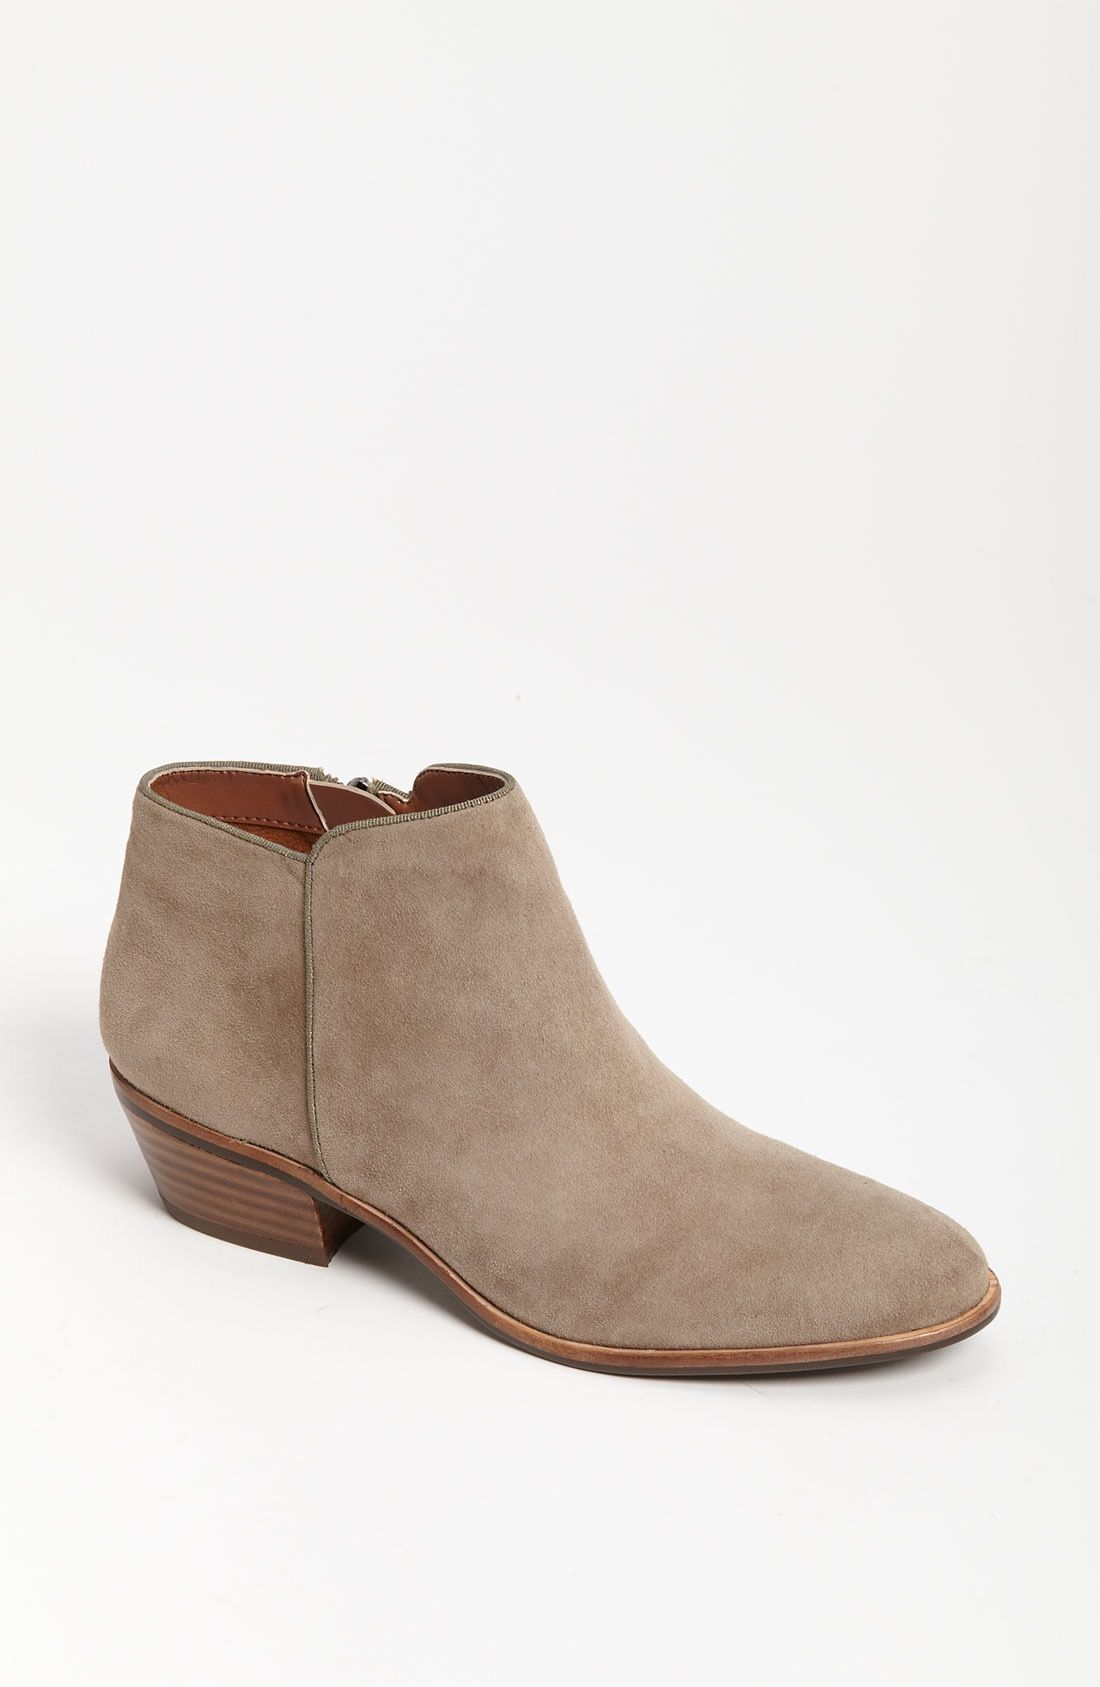 2a57a8365 Sam Edelman  Petty  Chelsea Boot (Women) available at  Nordstrom ...